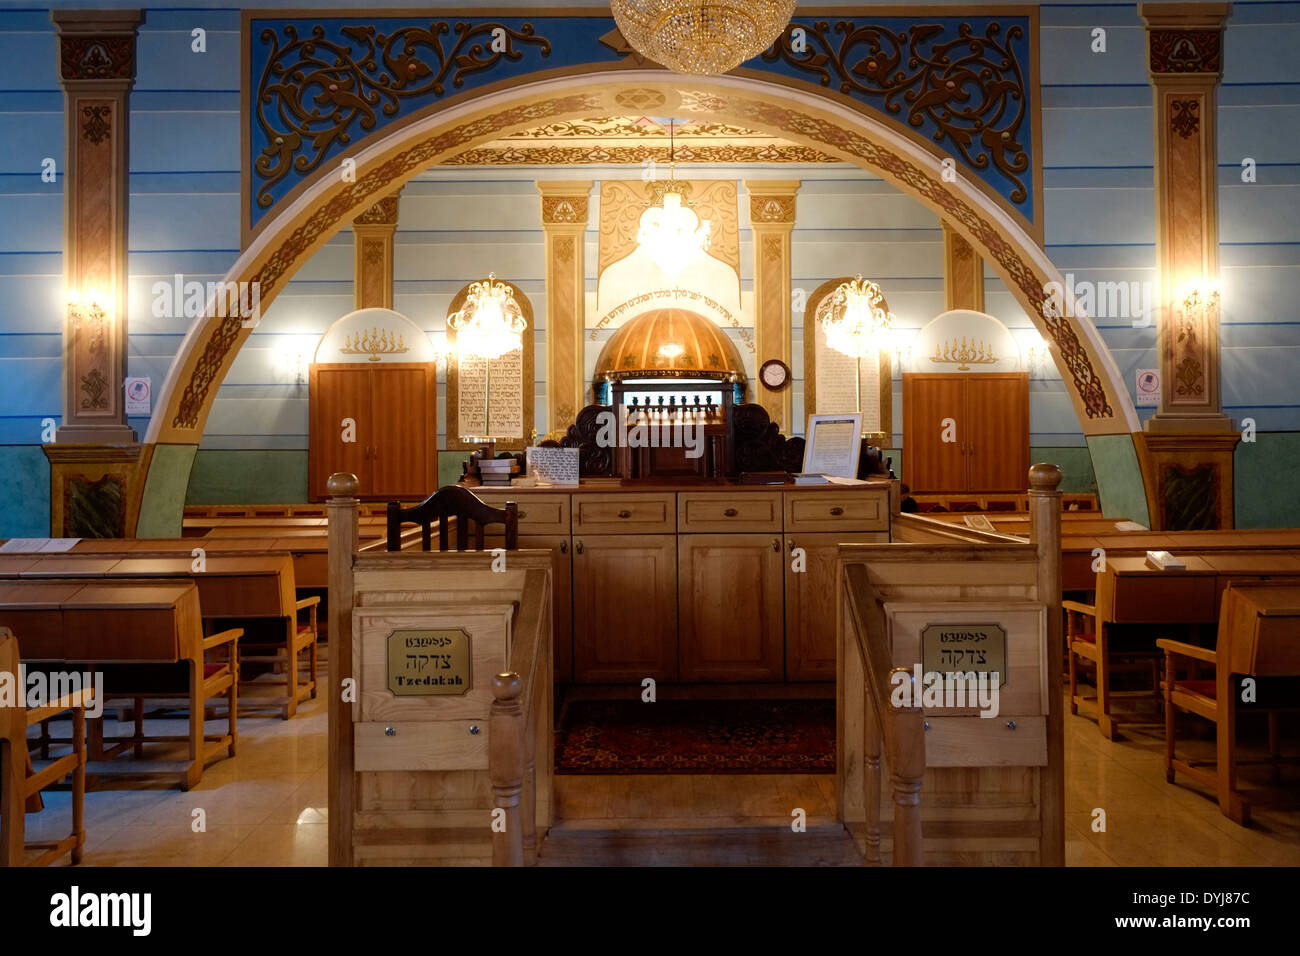 Prayer hall at the Great Jewish Synagogue built from 1895 to 1903 in an eclectic style by Georgian Jews from Akhaltsikhe - Stock Image